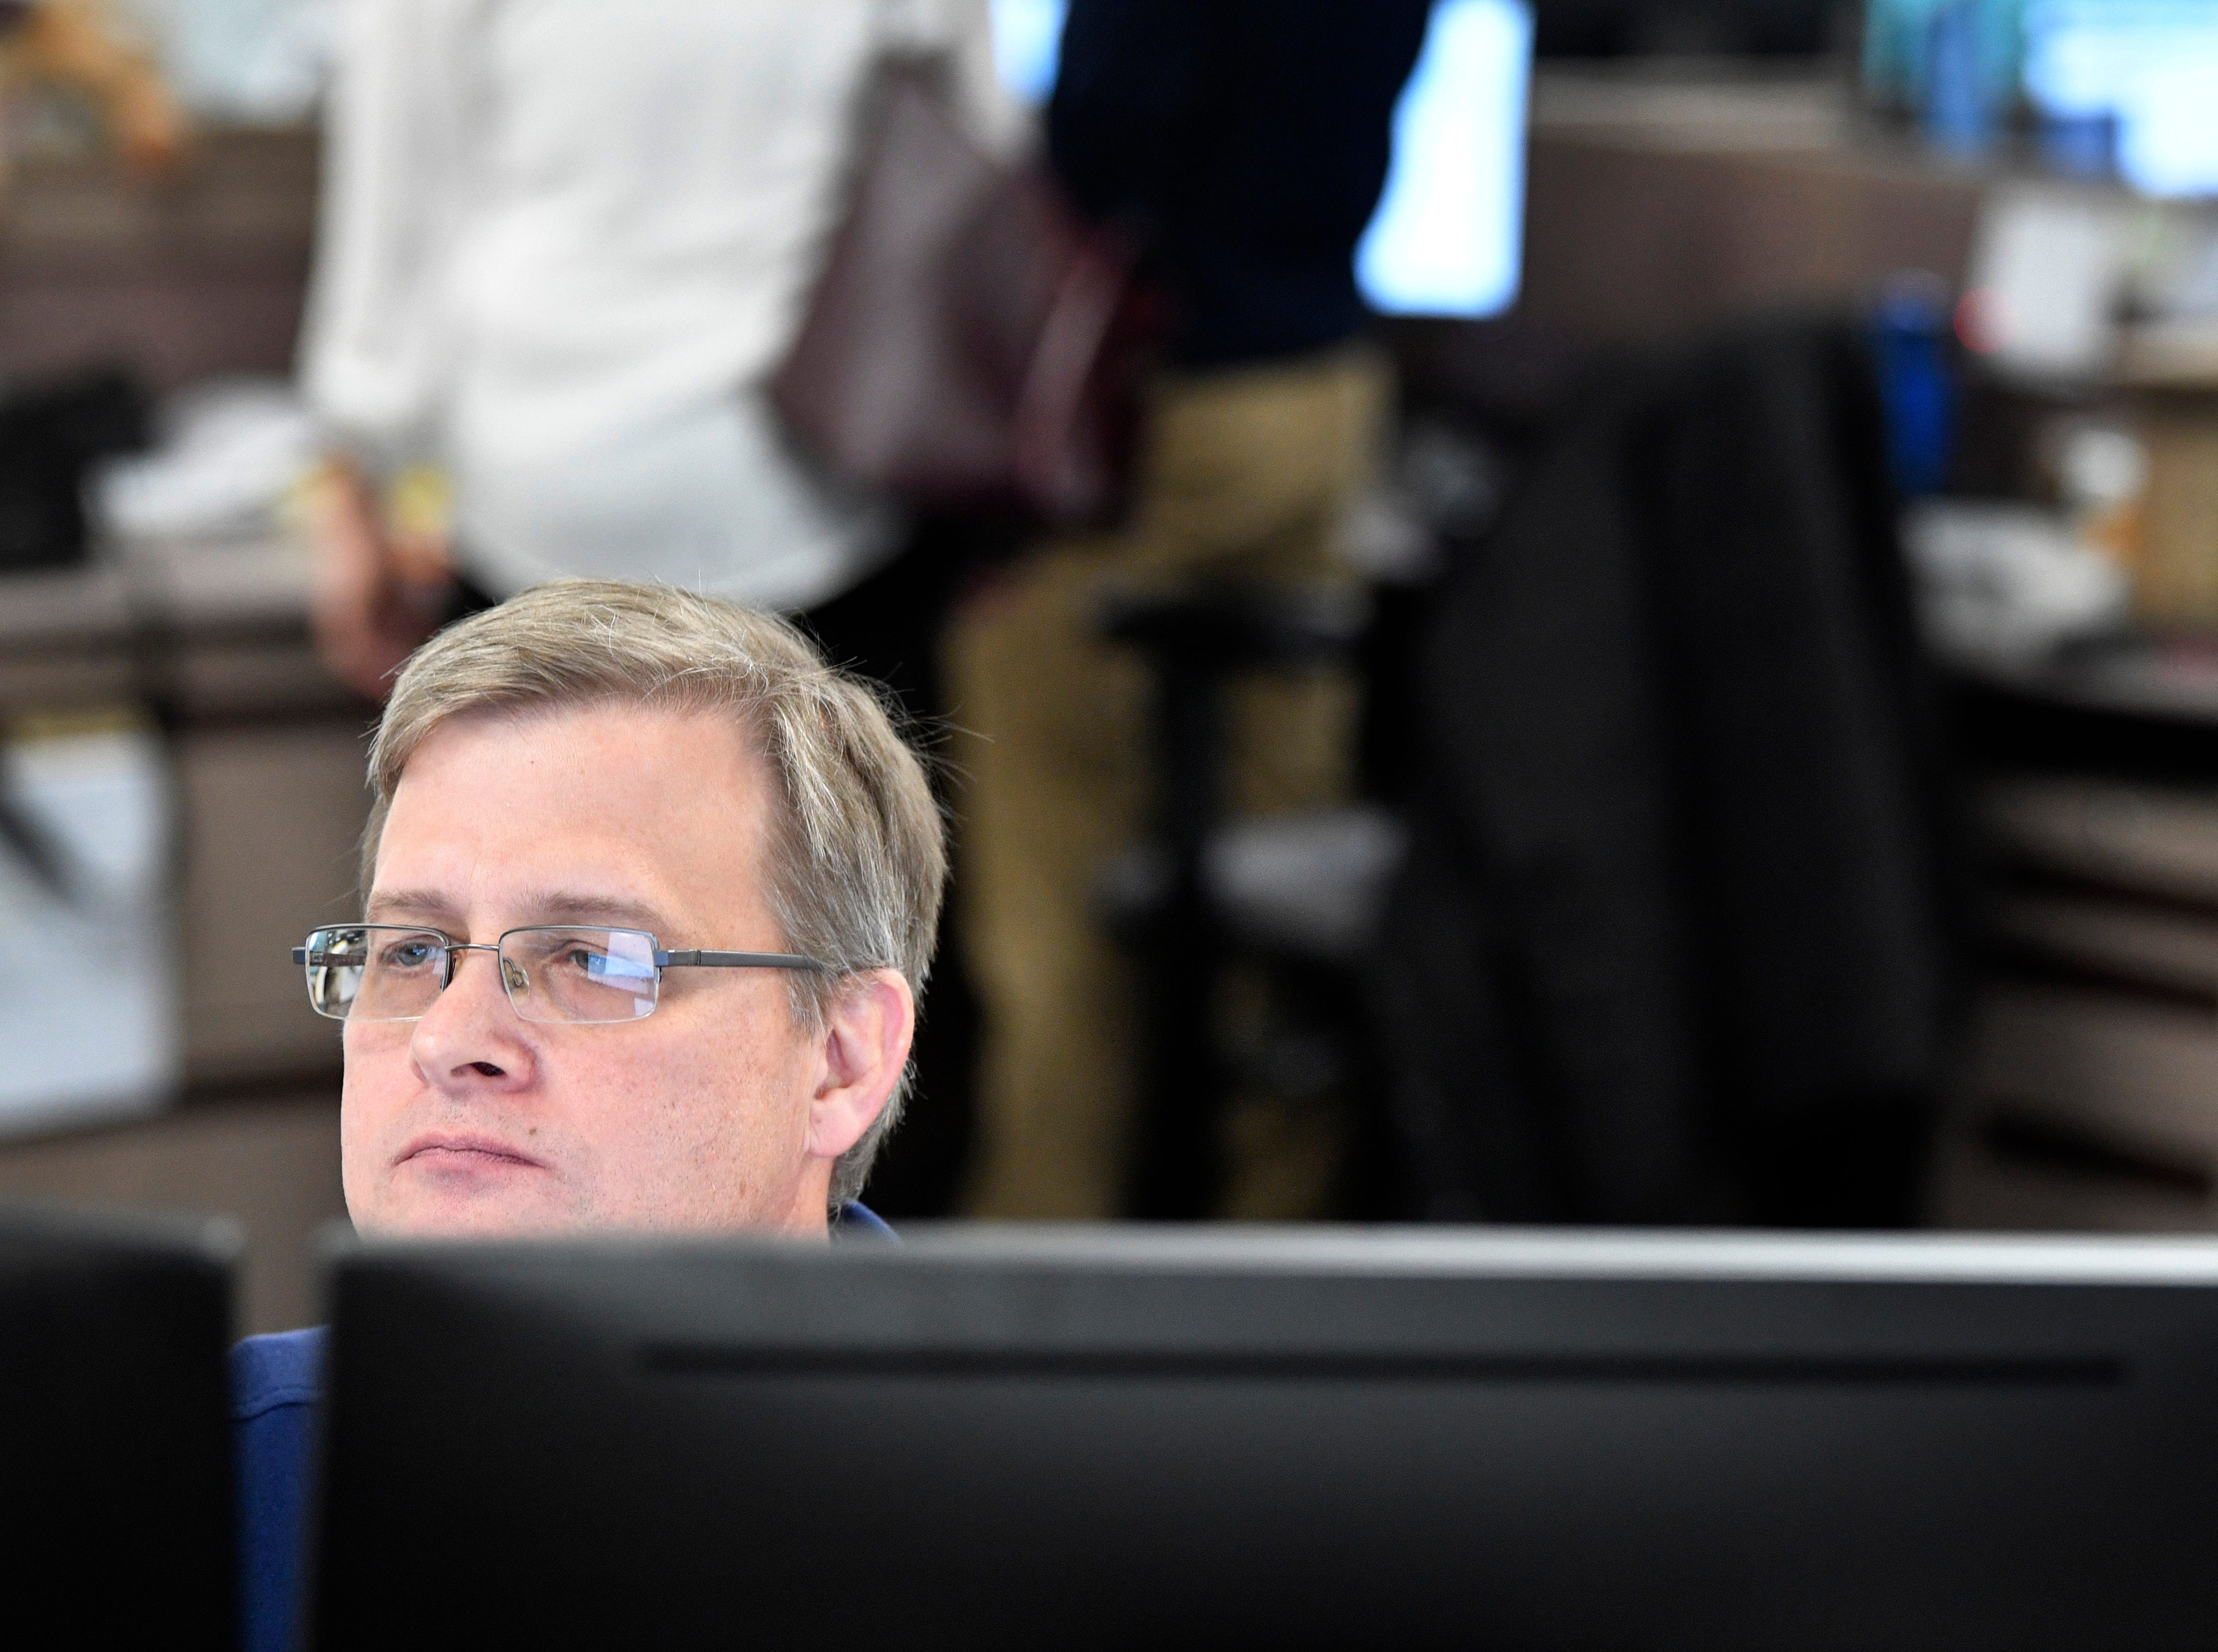 Producer Kevin Procter works in The Tennessean newsroom Wednesday, Jan. 2, 2019, in Nashville.